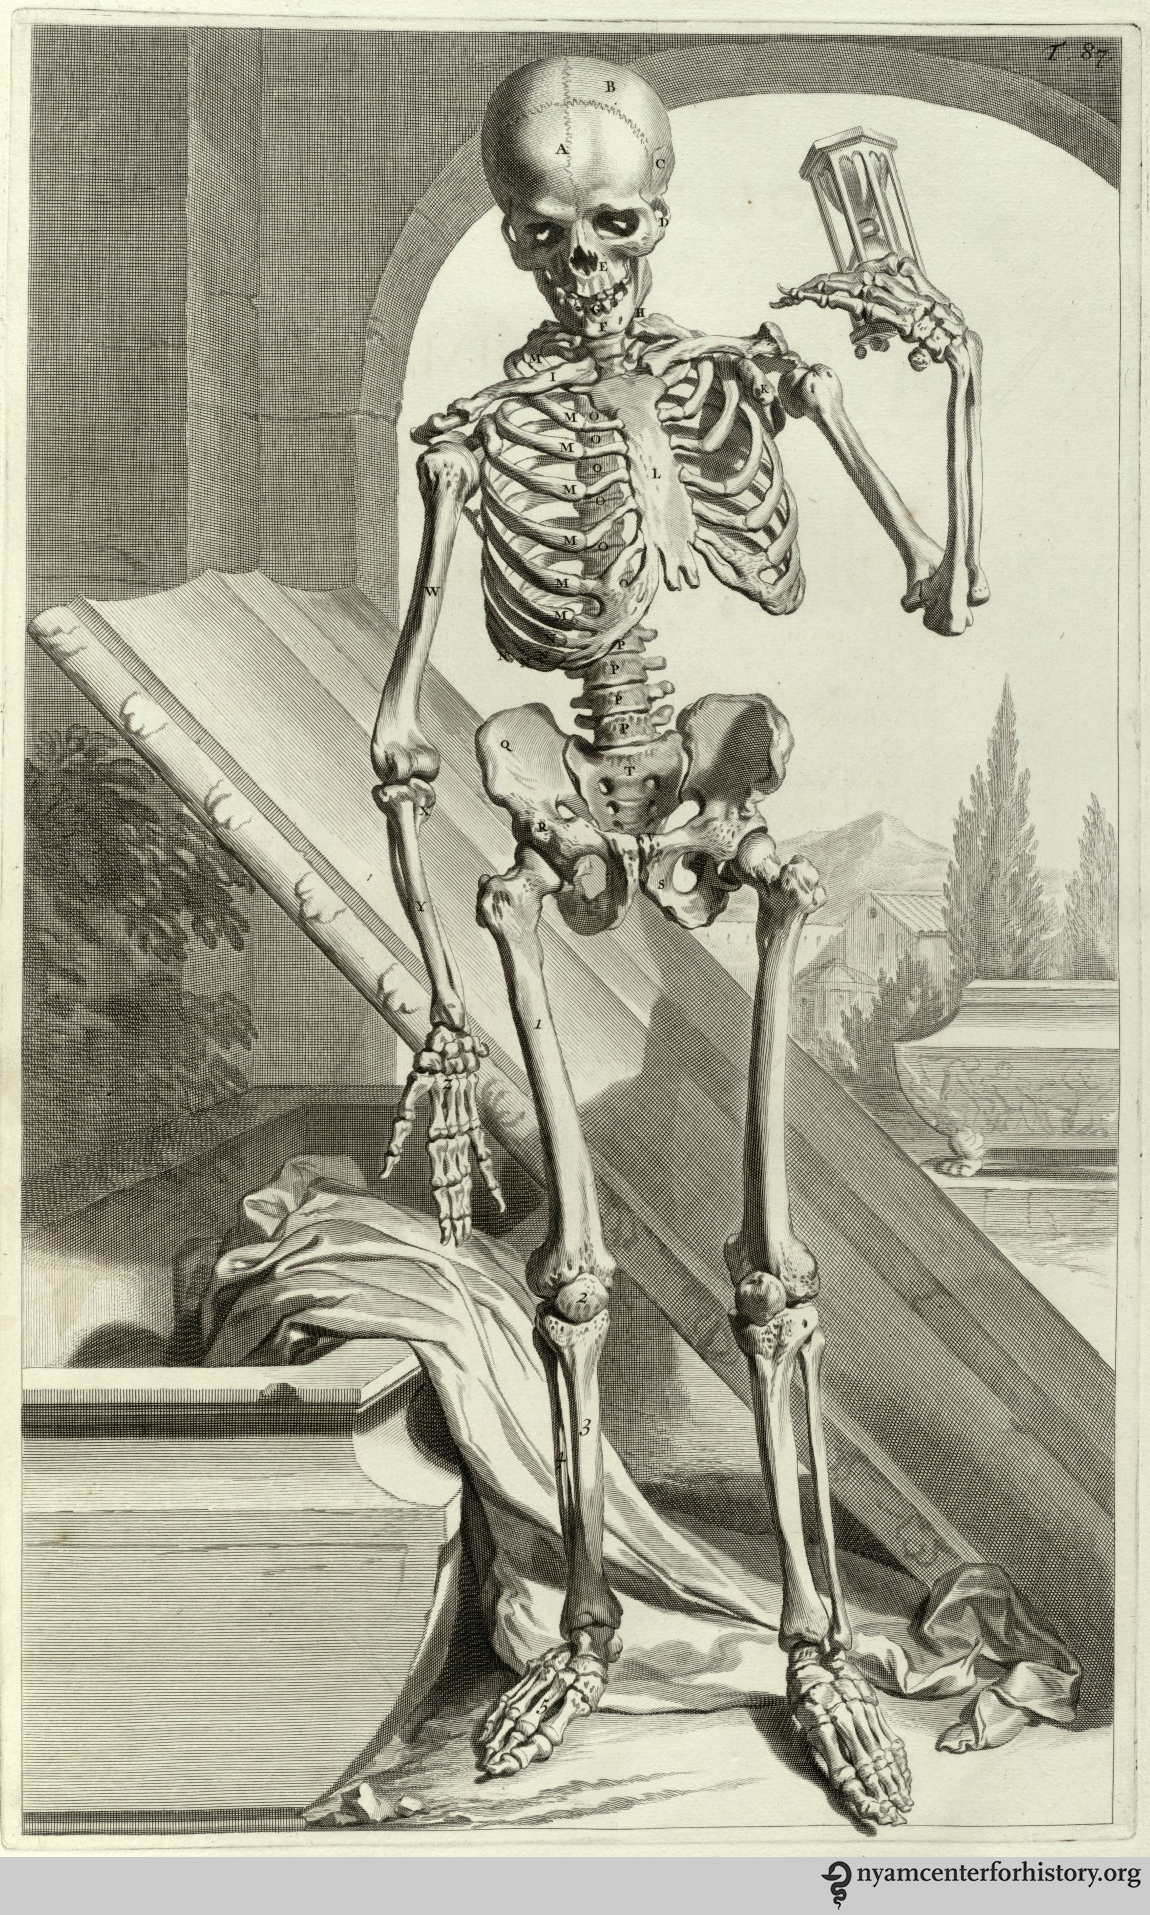 Brains, Brawn, & Beauty: Andreas Vesalius and the Art of Anatomy ...